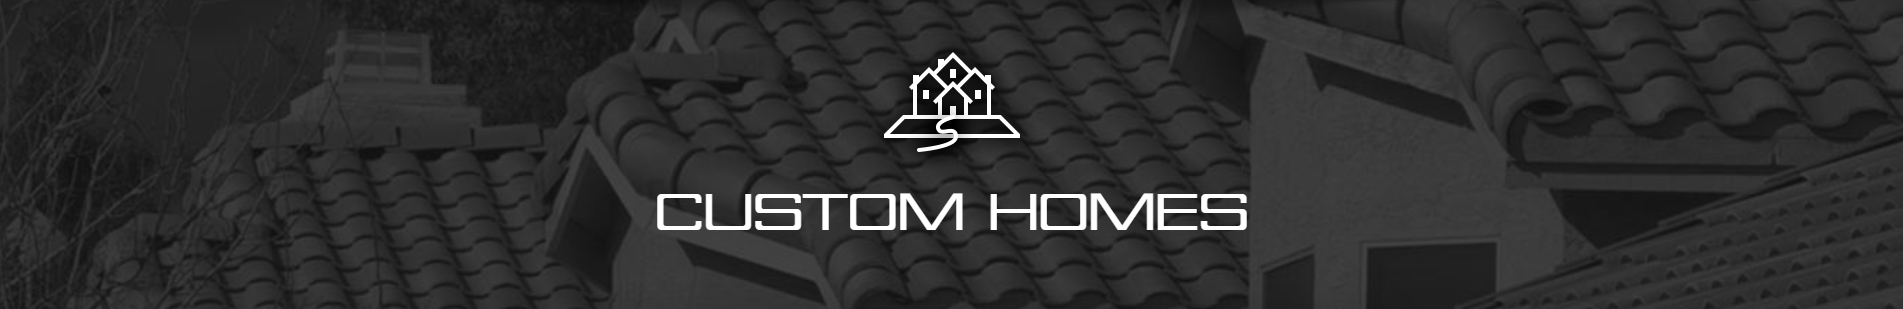 custom homes.PNG